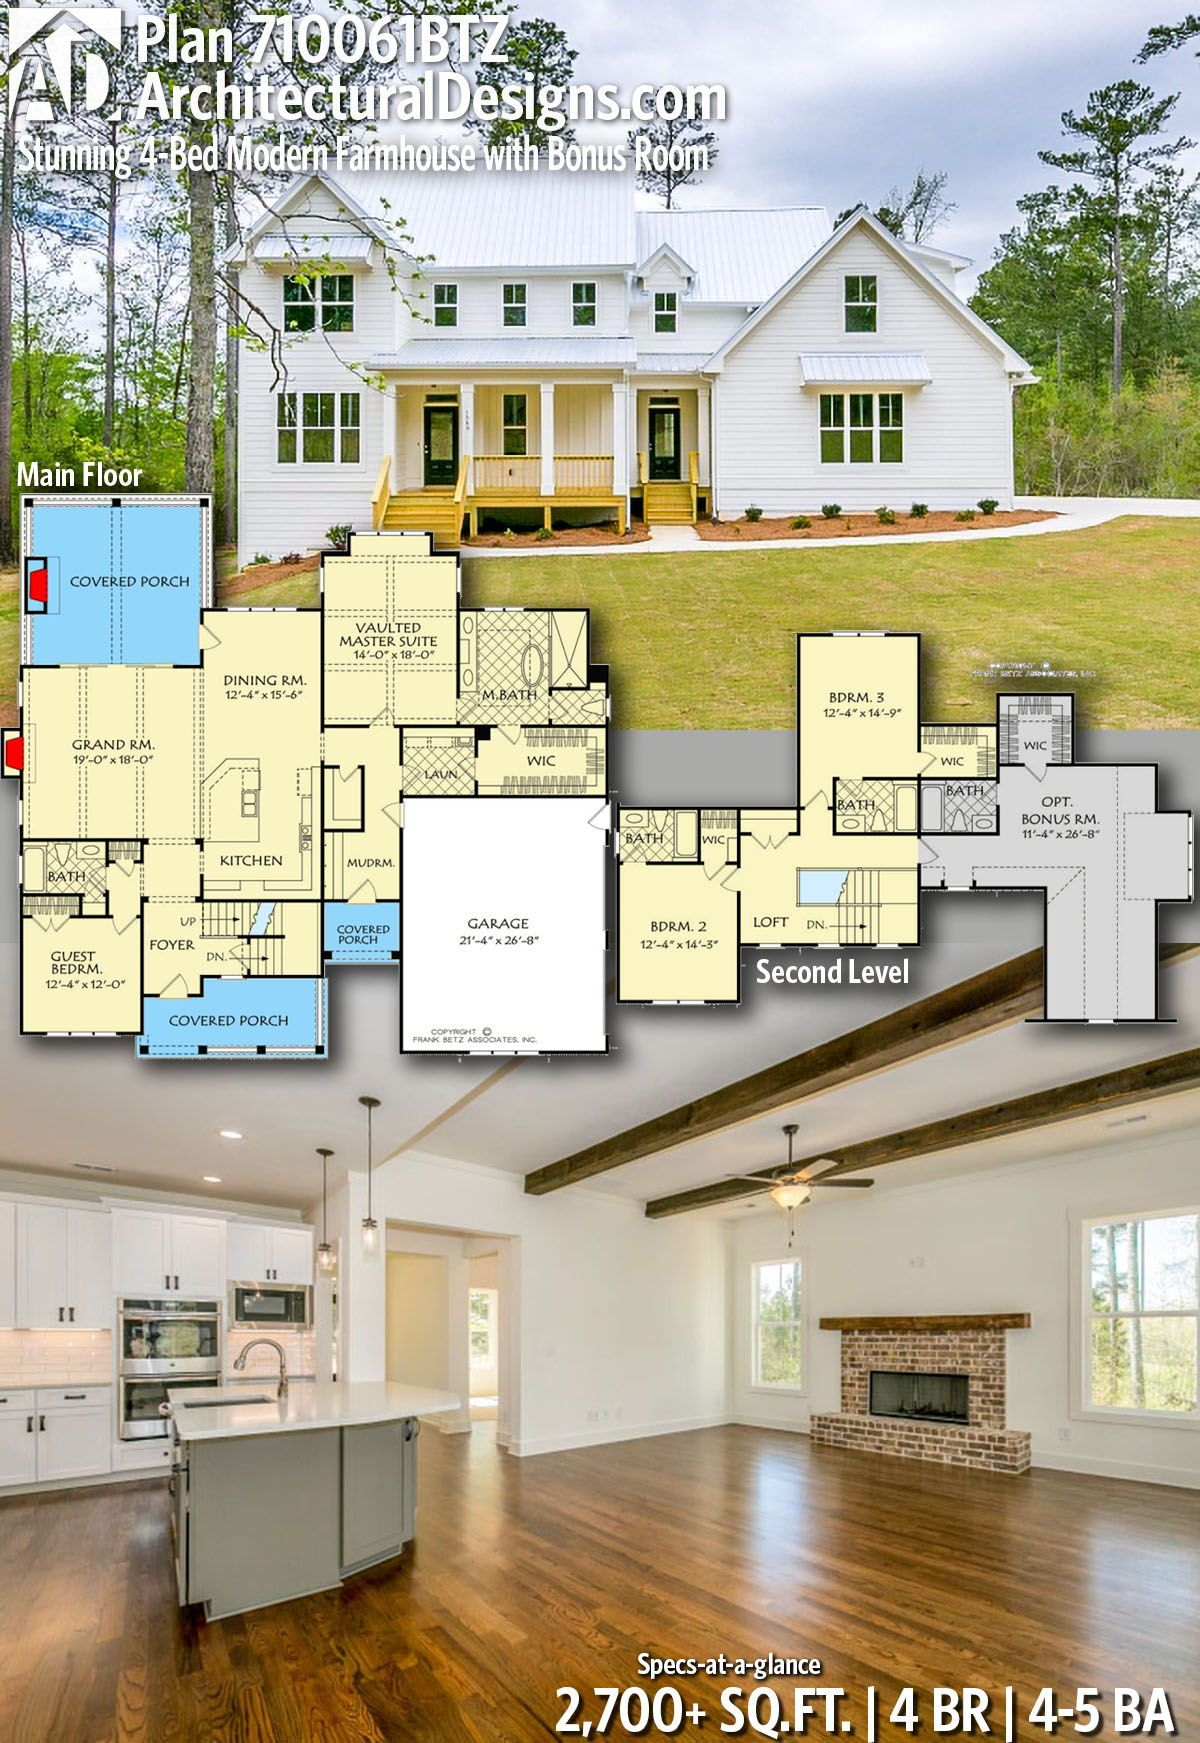 Architectural designs farmhouse plan btz gives you bedrooms baths and sq ft ready when are where do want to build also house plans archdesigns on pinterest rh